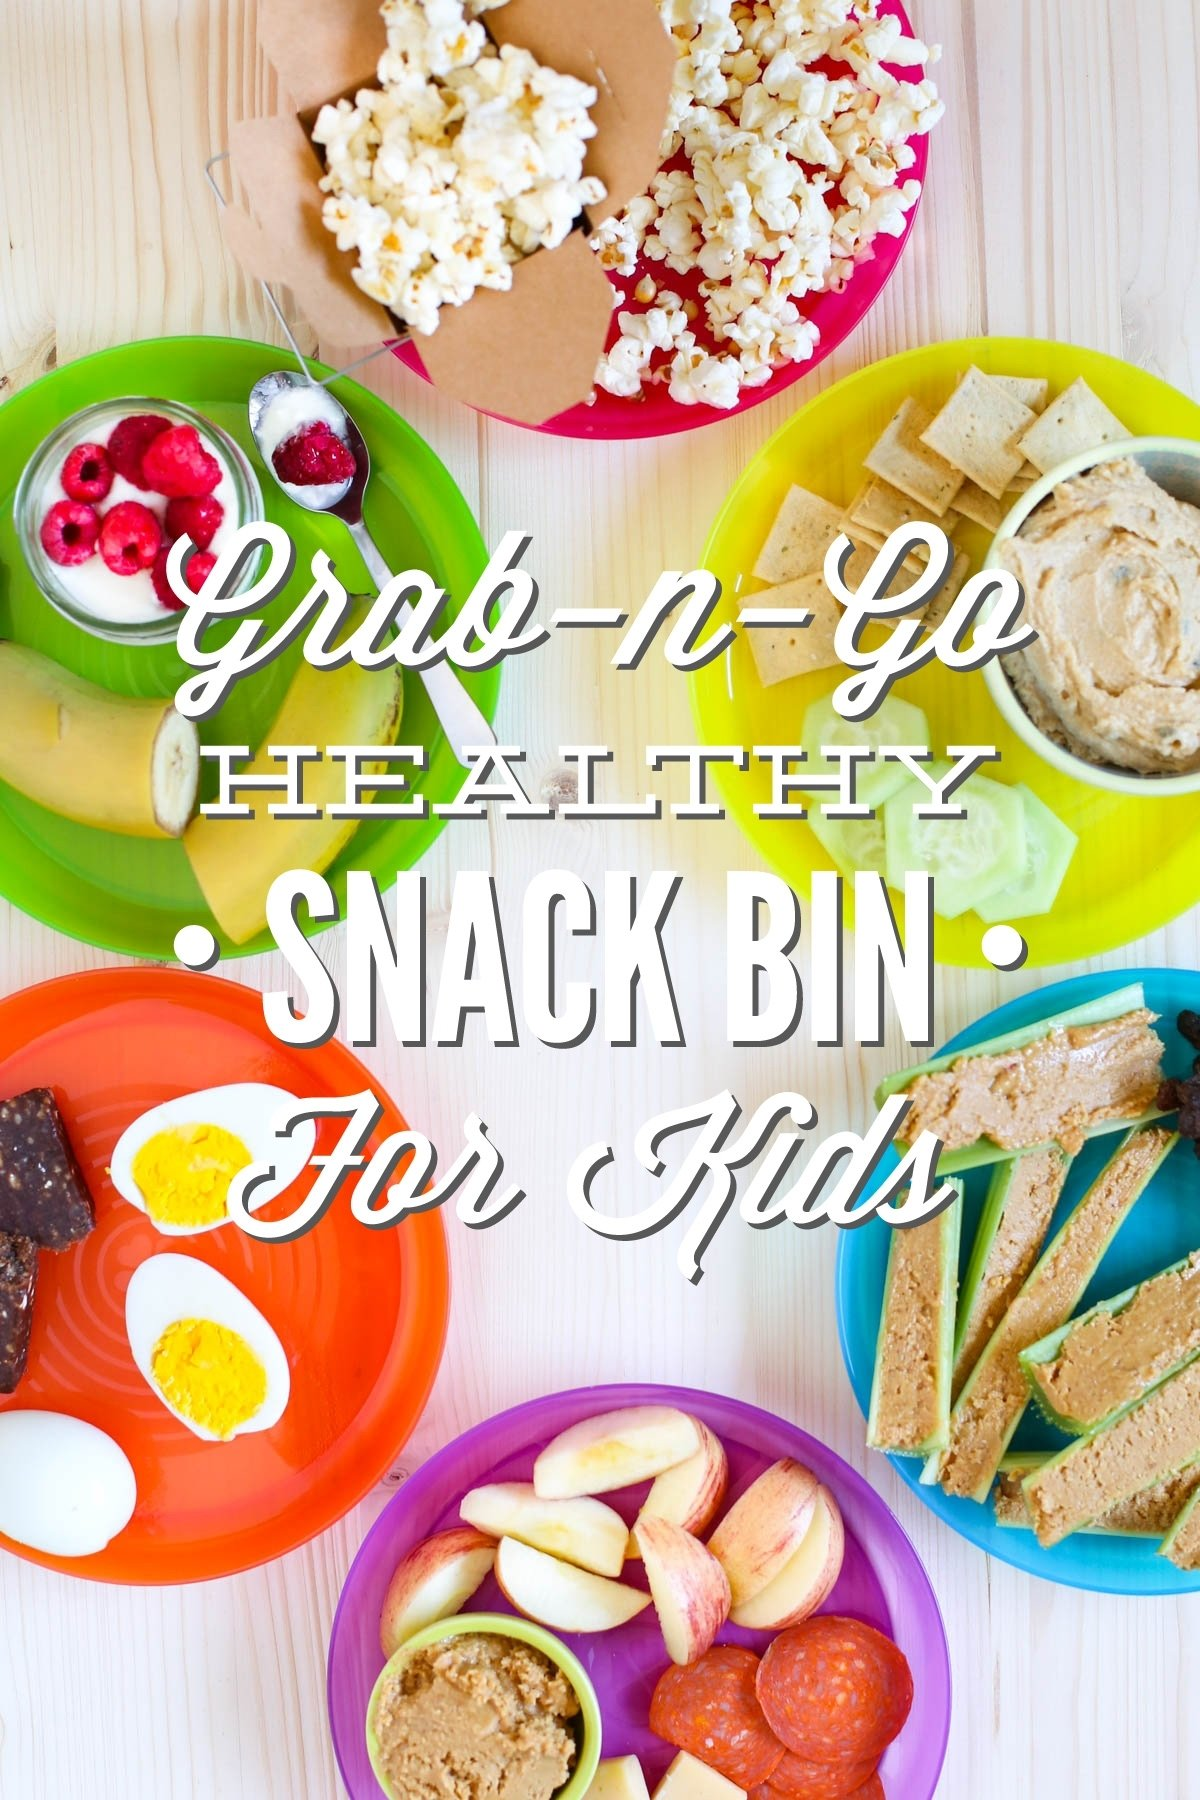 10 Stylish Grab And Go Lunch Ideas simplify snack time grab n go healthy snack bin for kids live simply 2020